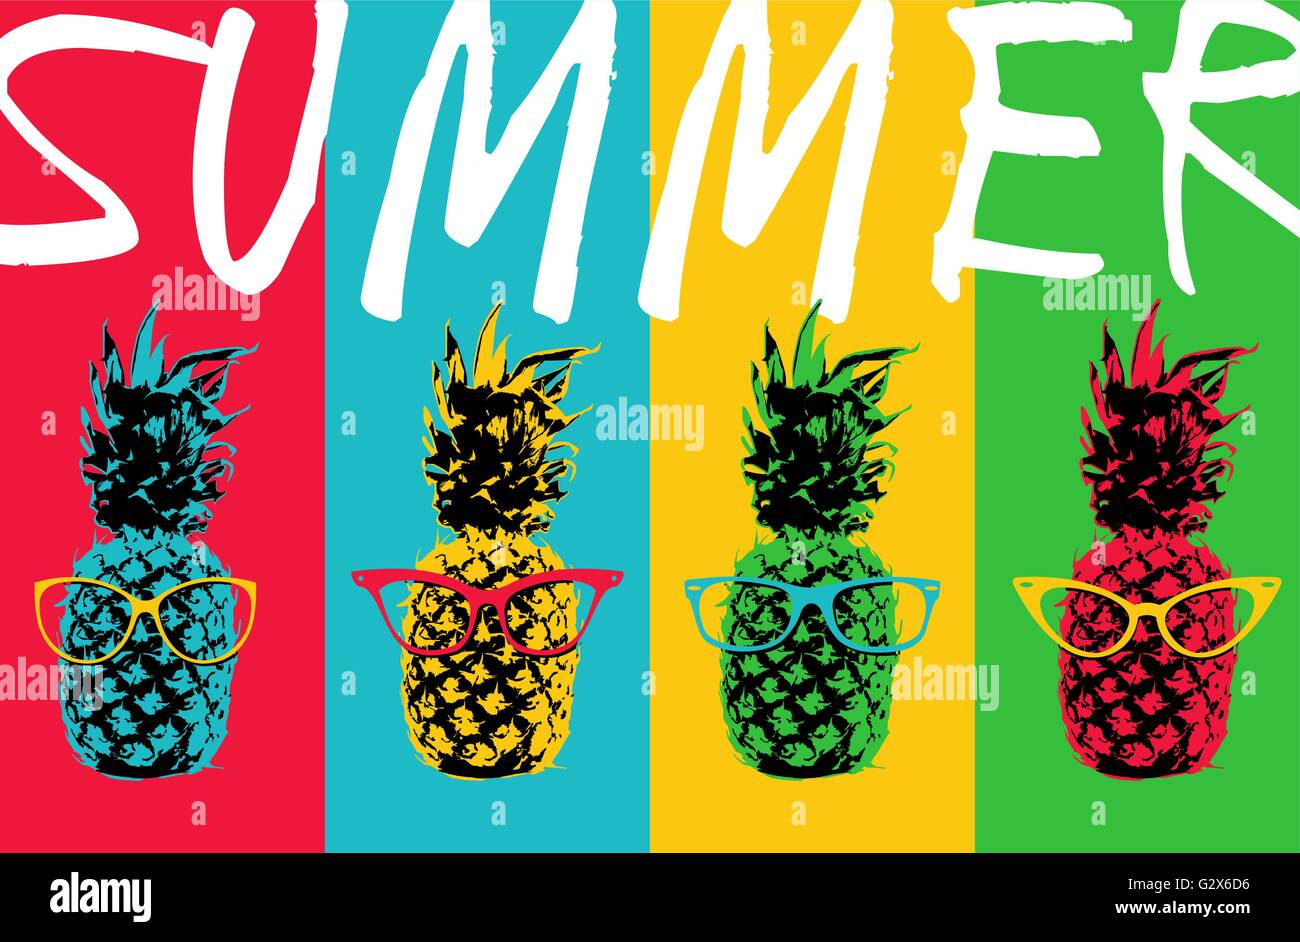 colorful pineapple background. retro 80s summer concept illustration of pop art pineapple fruit with hipster eye glasses and colorful background